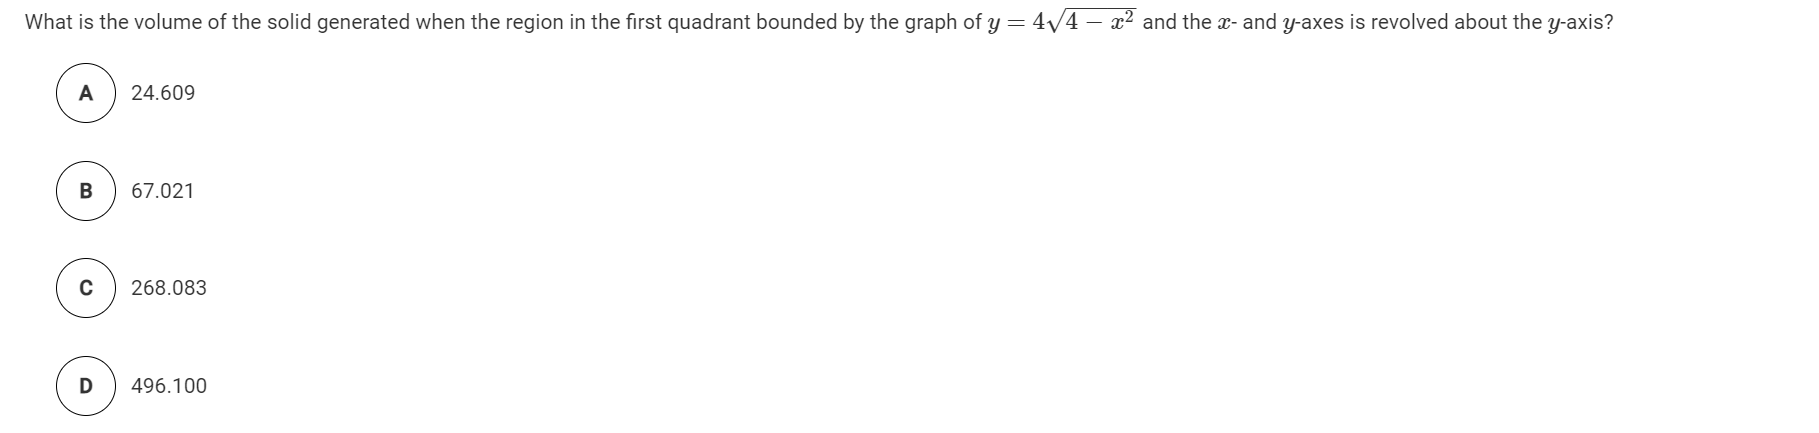 What is the volume of the solid generated when the region in the first quadrant bounded by the graph of y = 4V4 – x2 and the